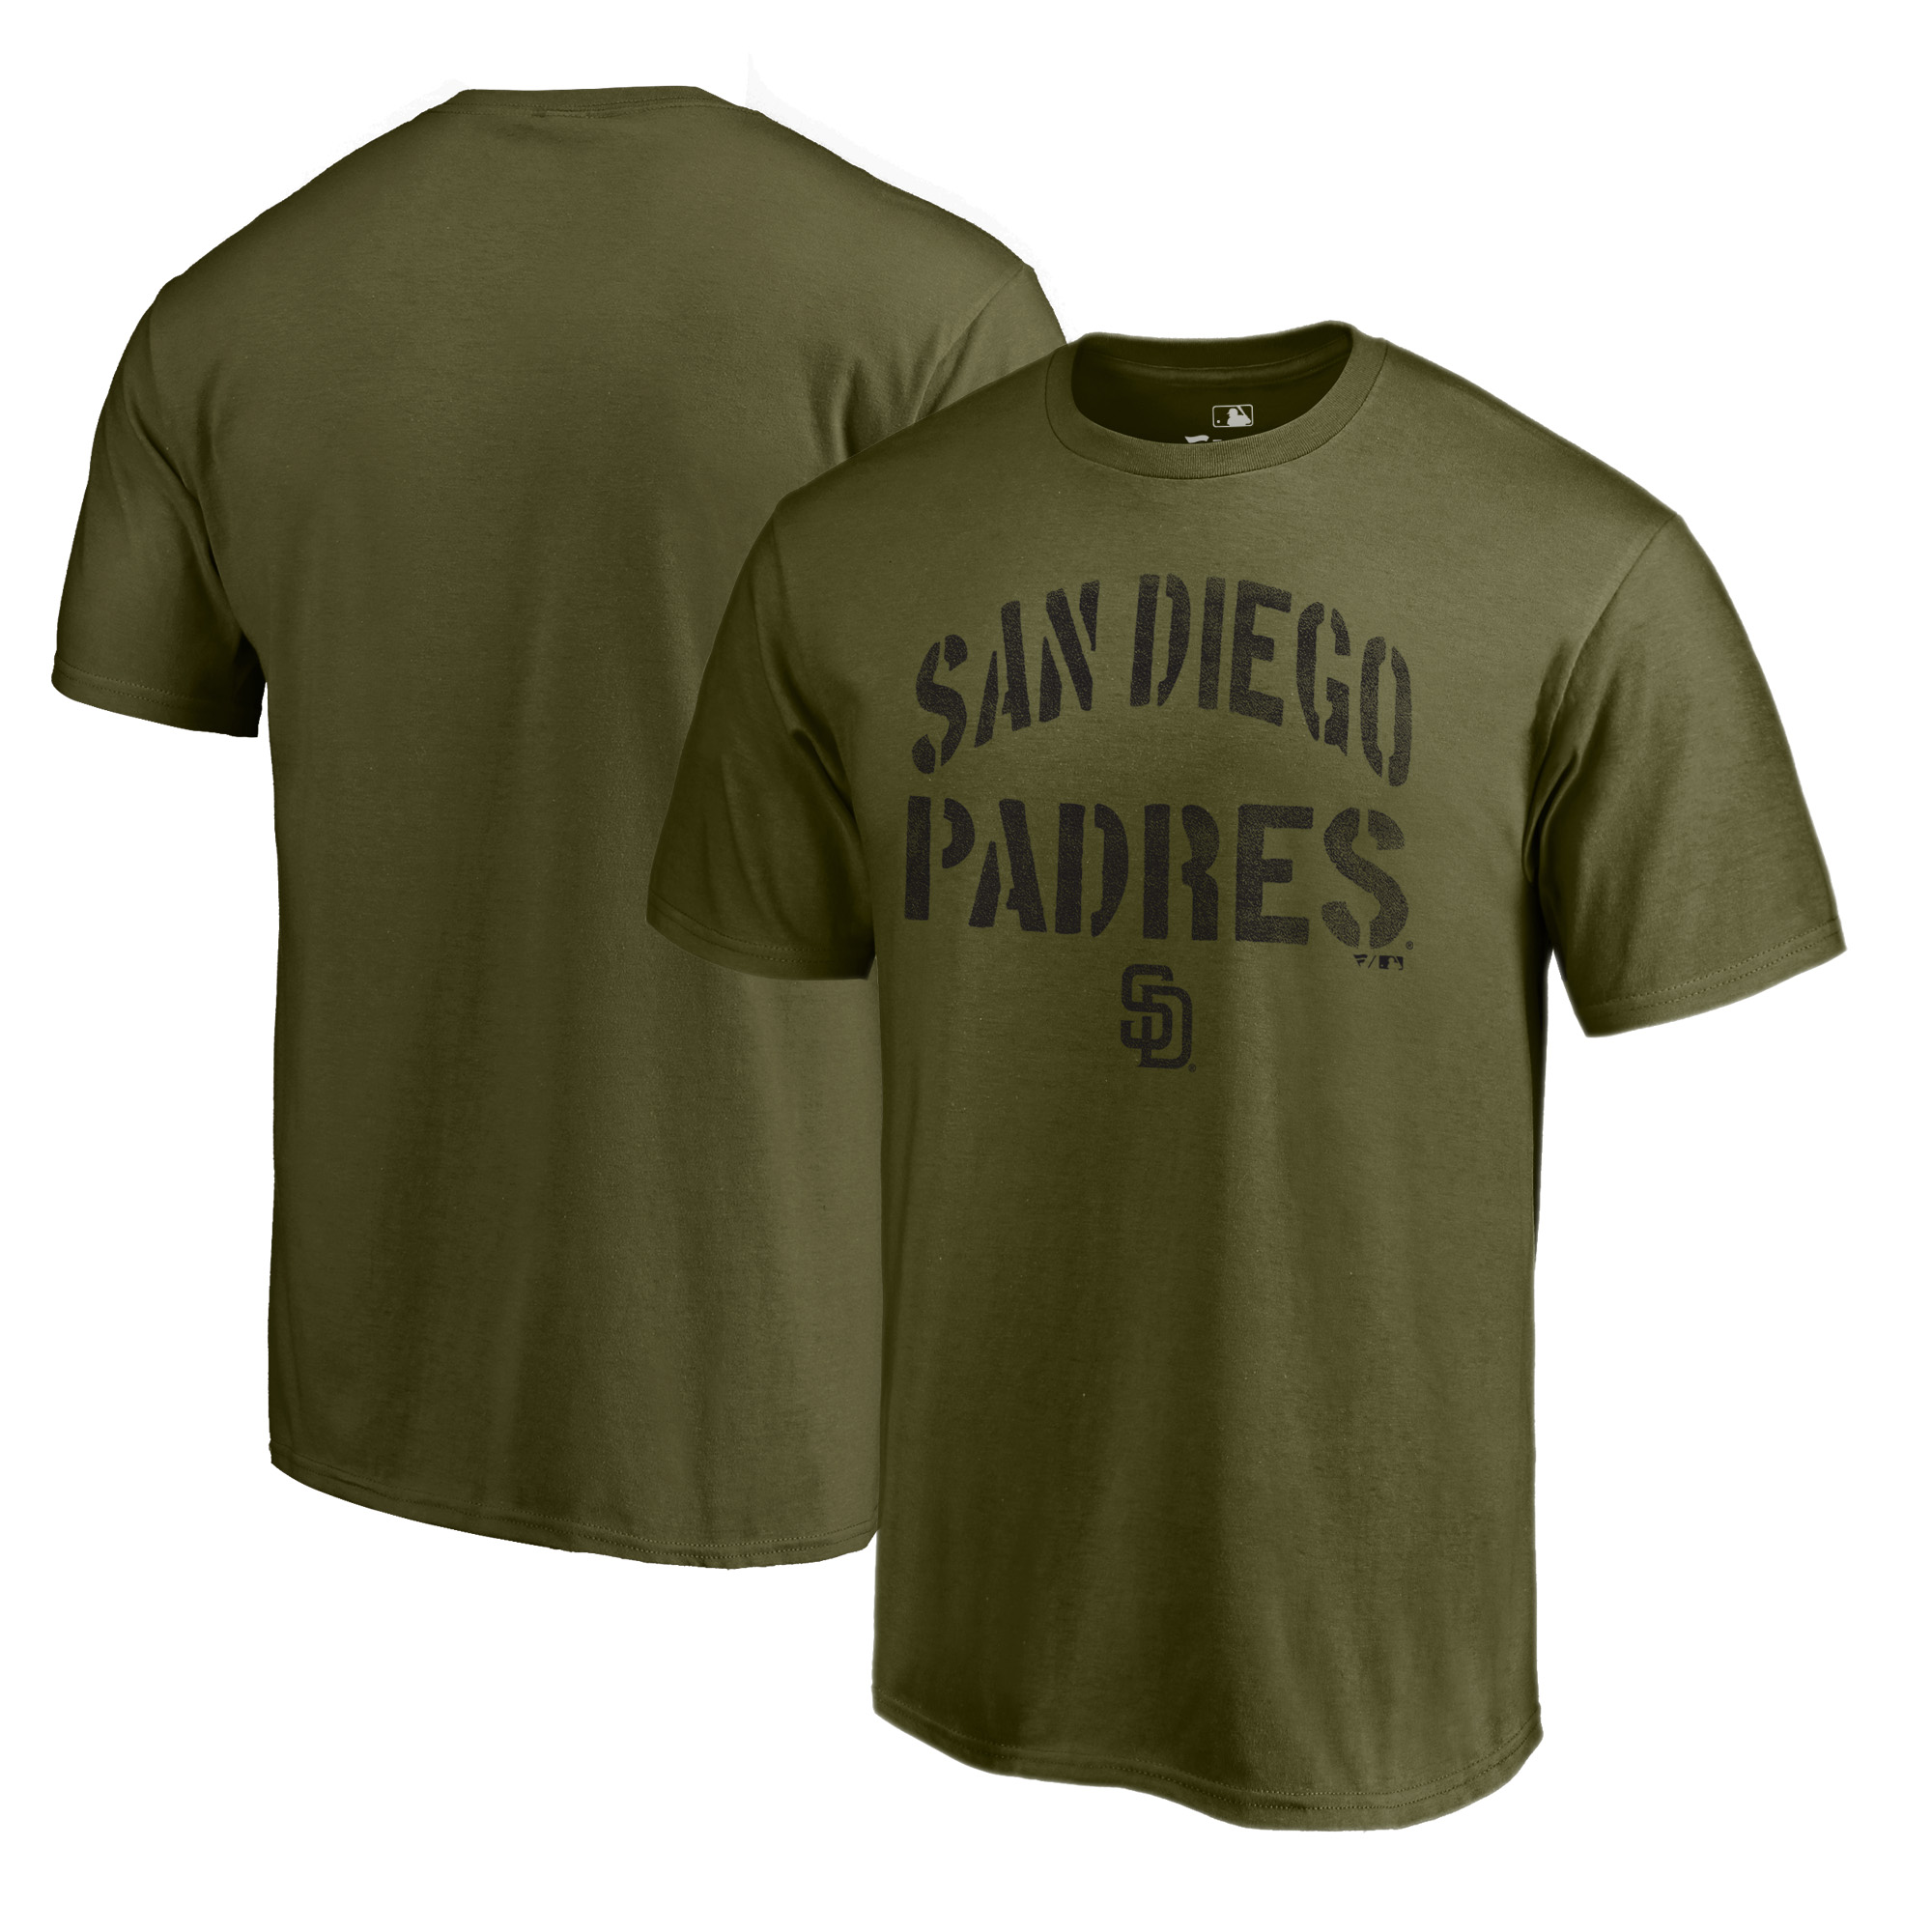 San Diego Padres Fanatics Branded 2018 Memorial Day Camo Collection Jungle T-Shirt - Green